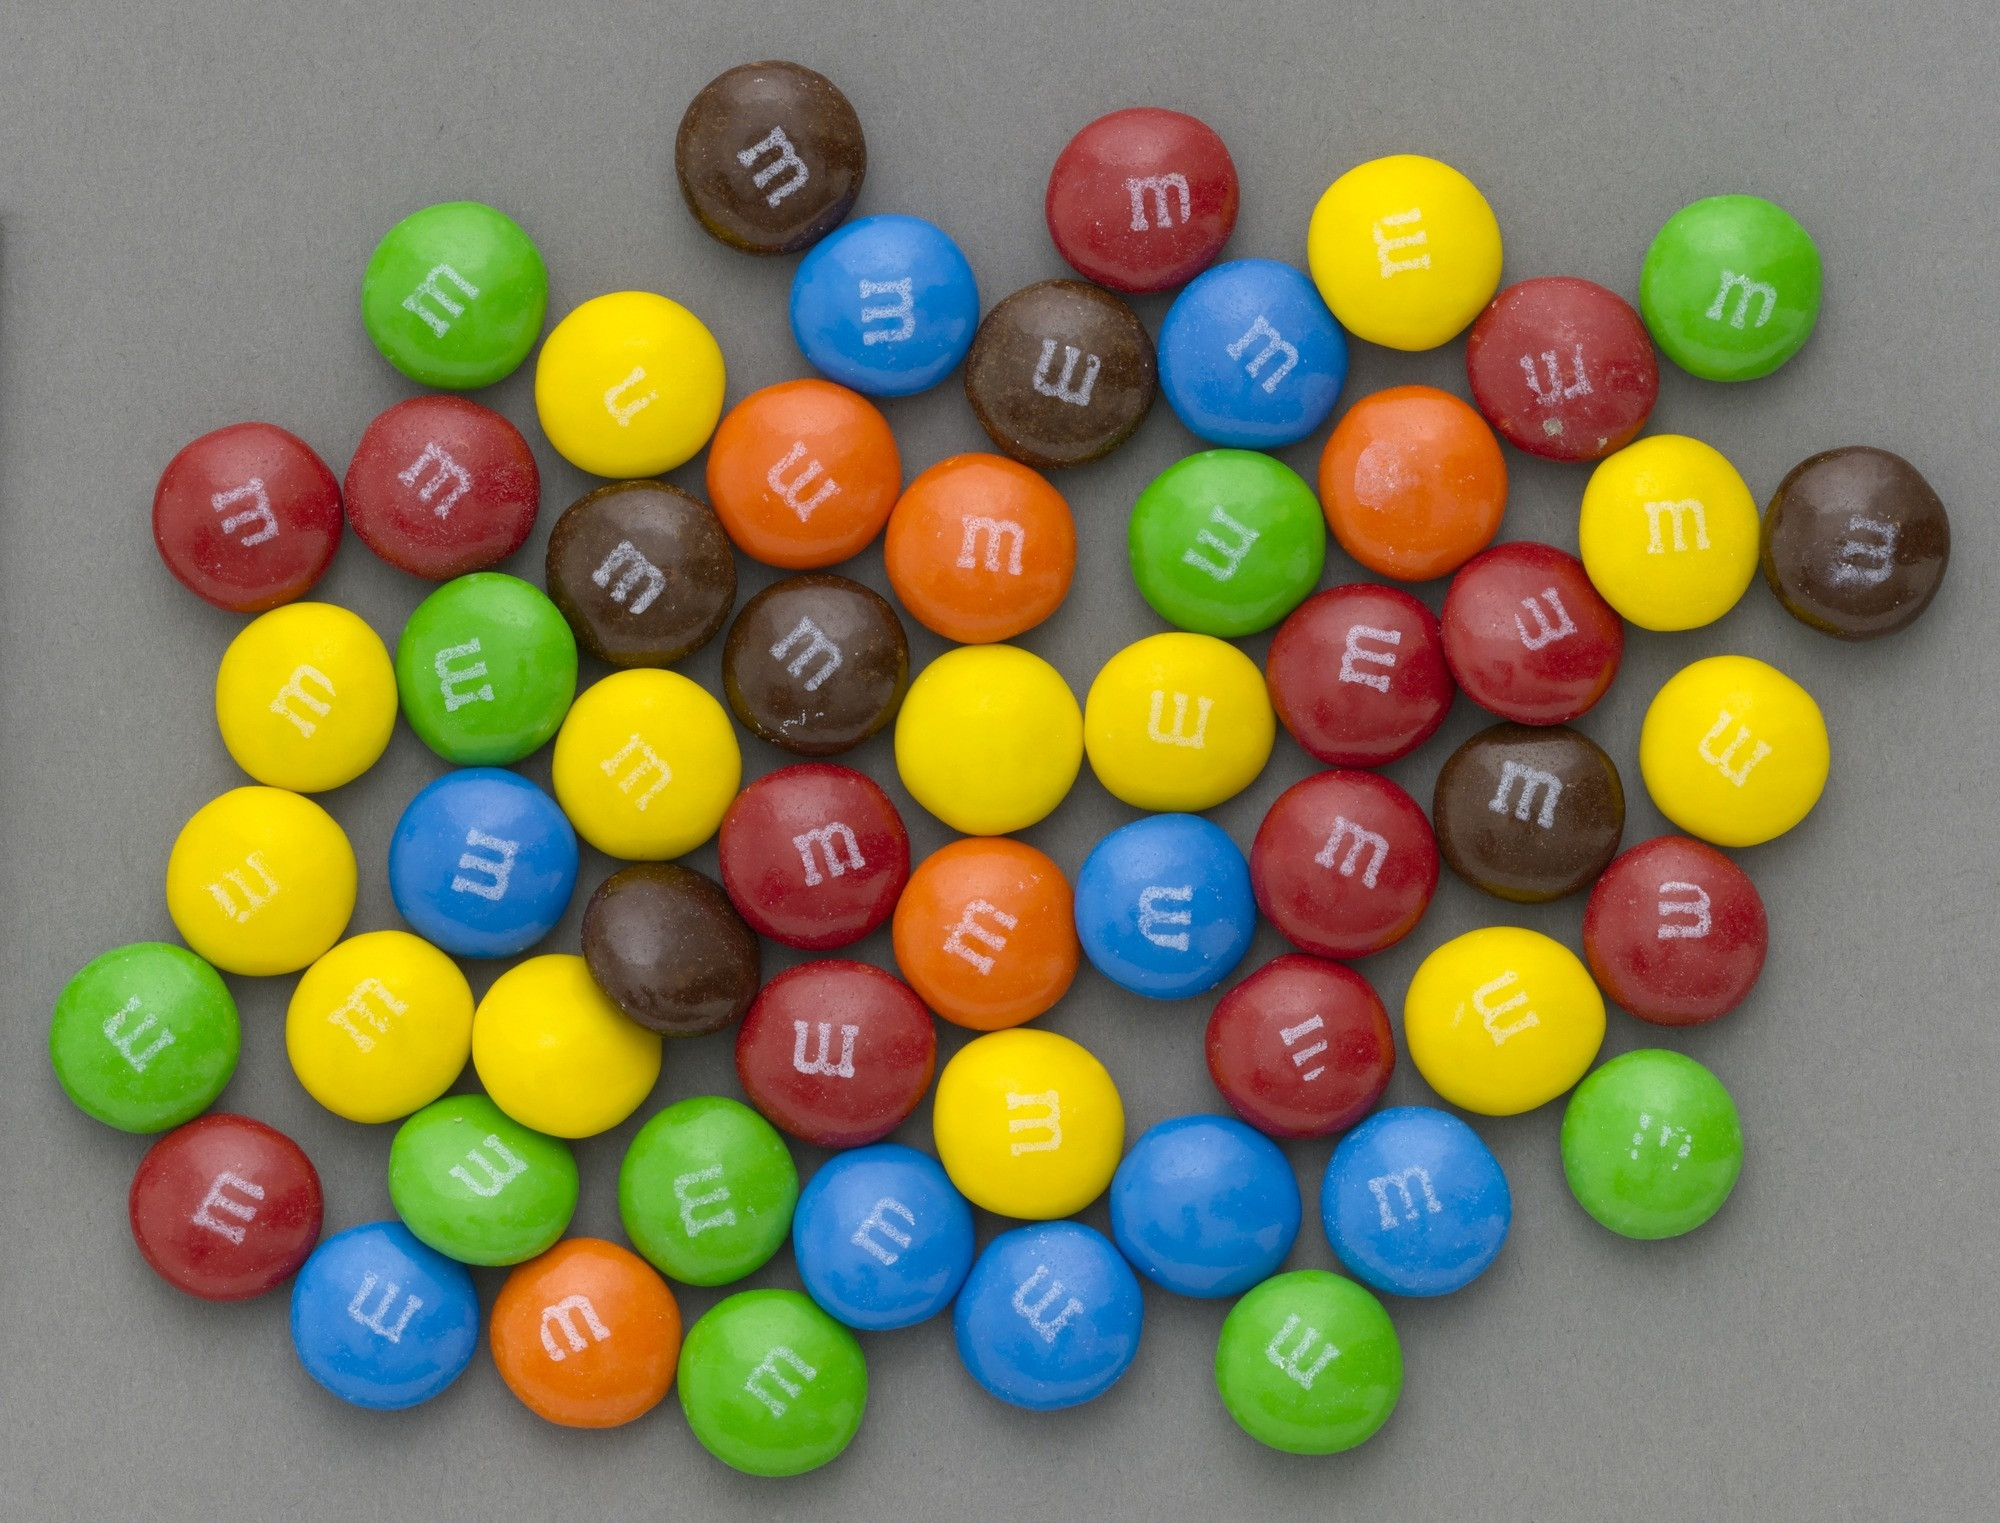 Forrest Mars. M&Ms. late 1930s